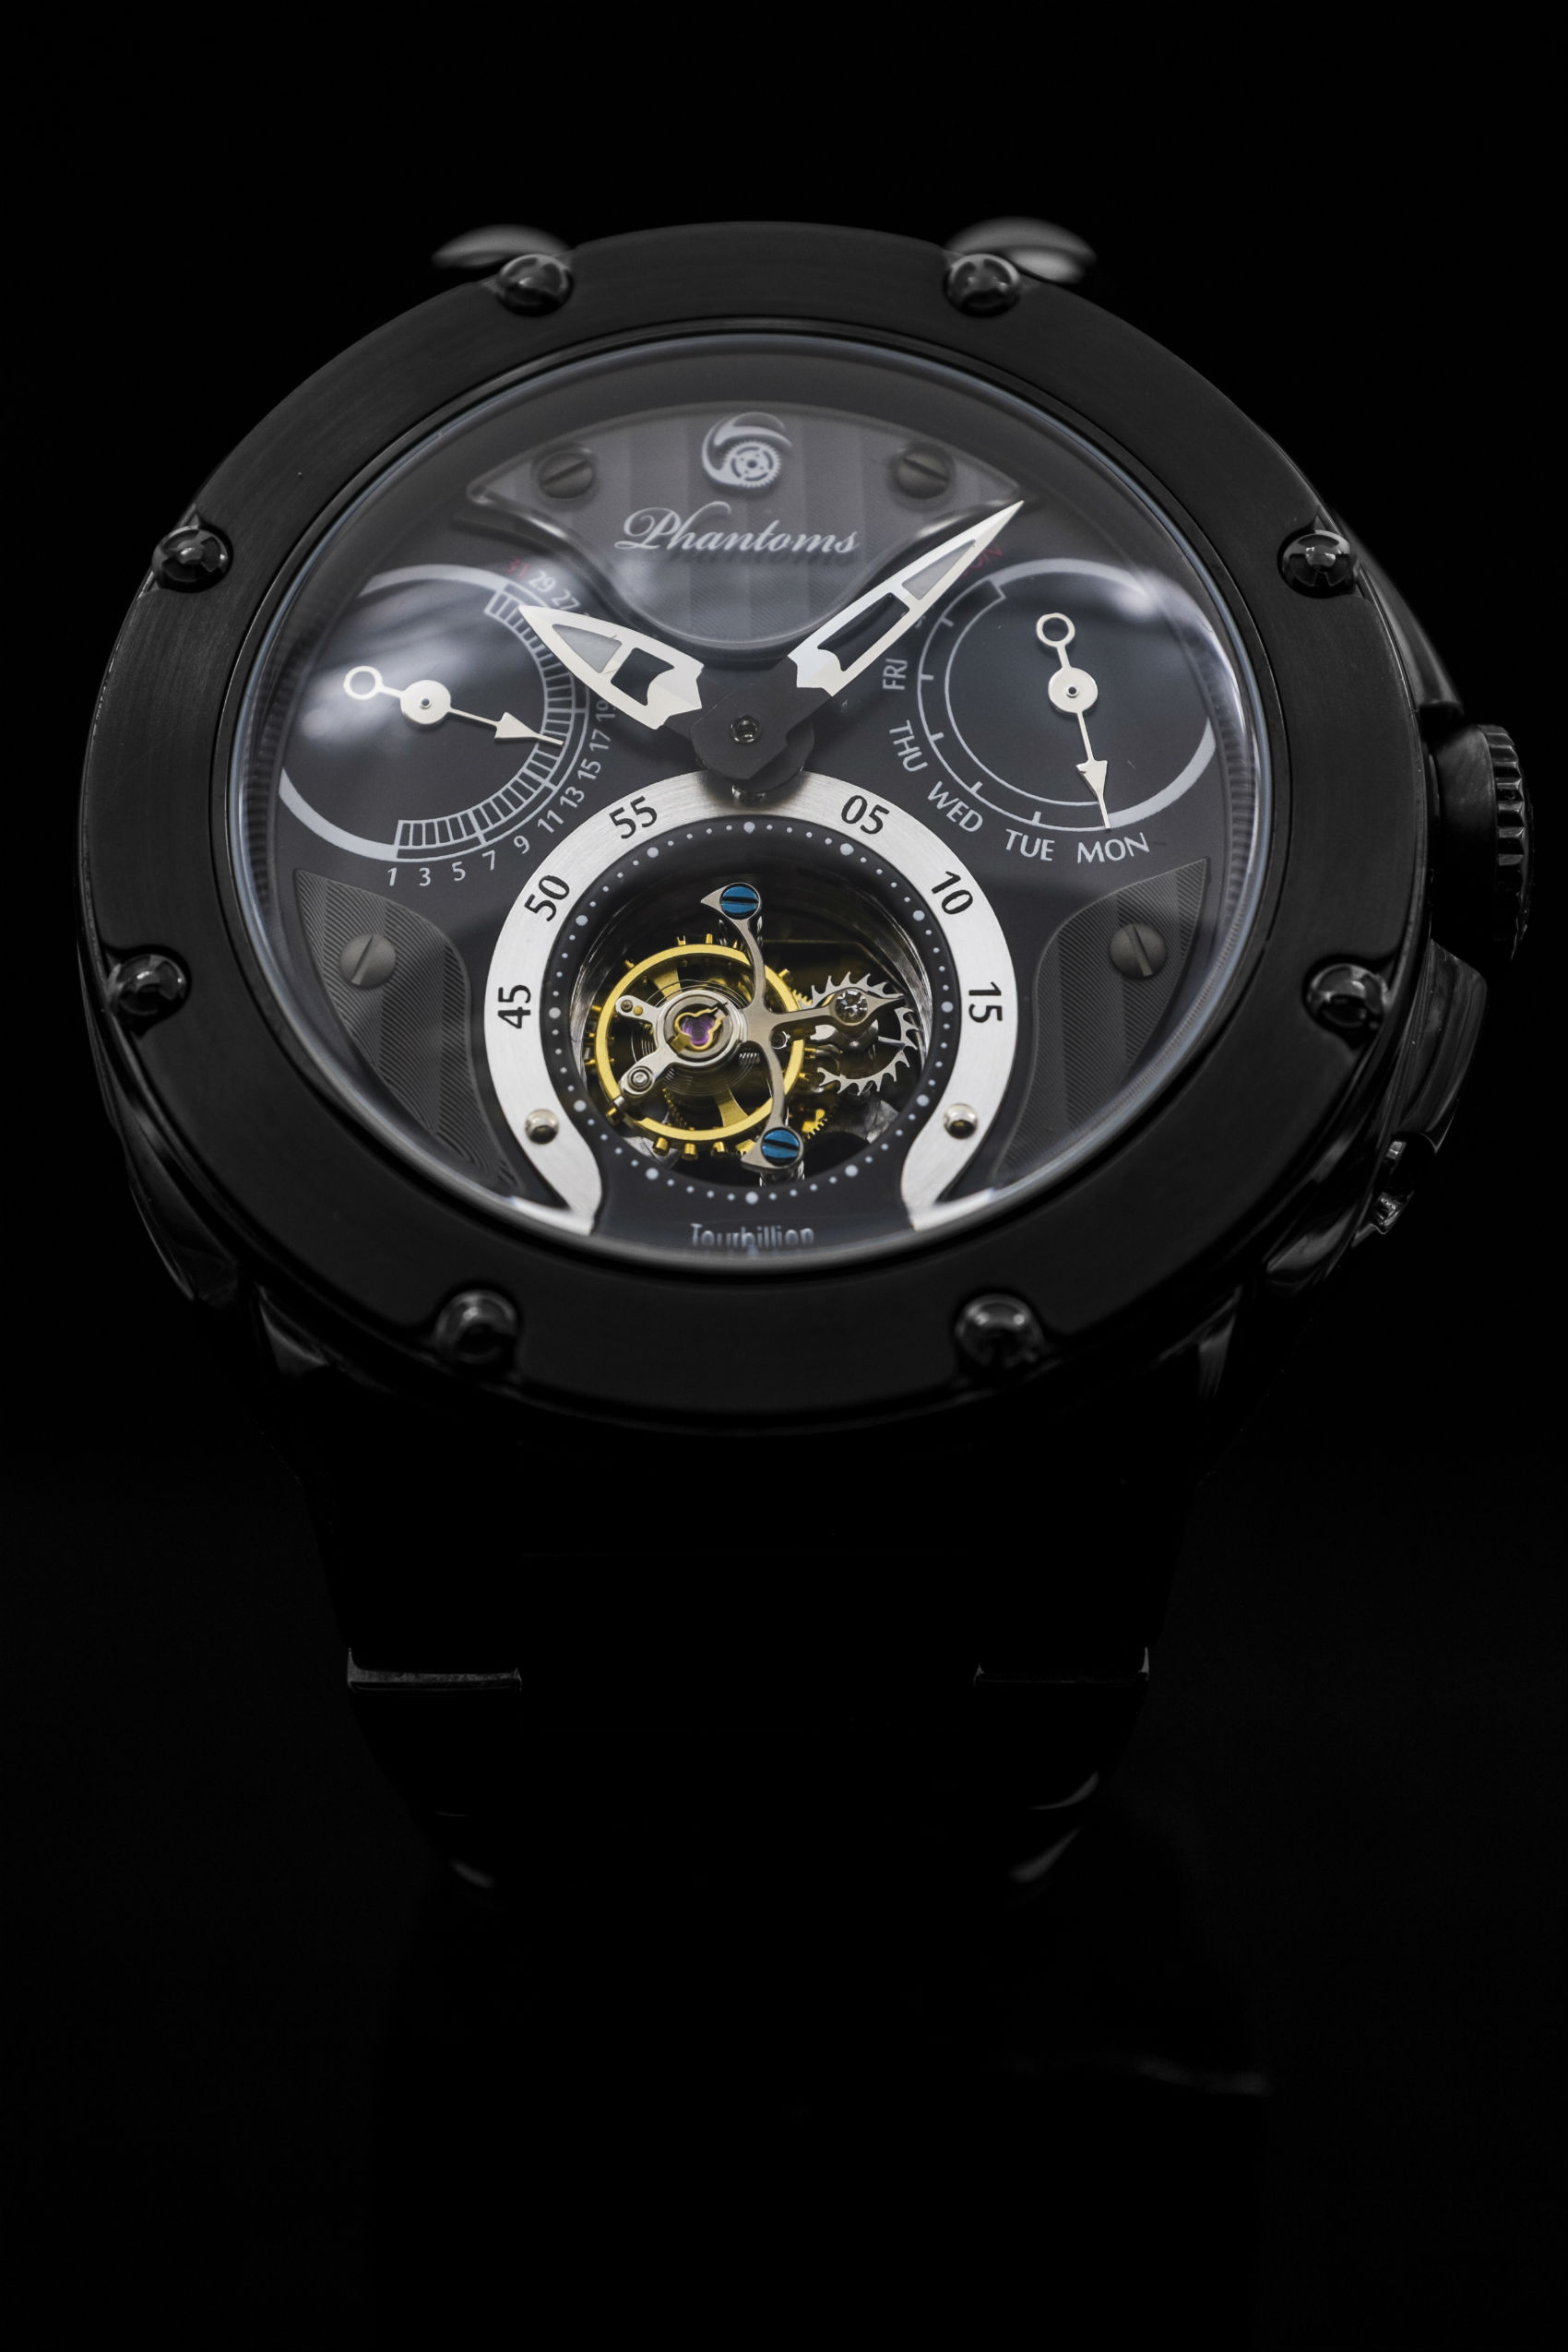 Phantoms Tourbillon Watch Brand, The World's First Mechanical Soul. Men and Women Luxury Elegant Sporty Watches Collection. Based In Hong Kong, Chinese Watch Making At its Finest.